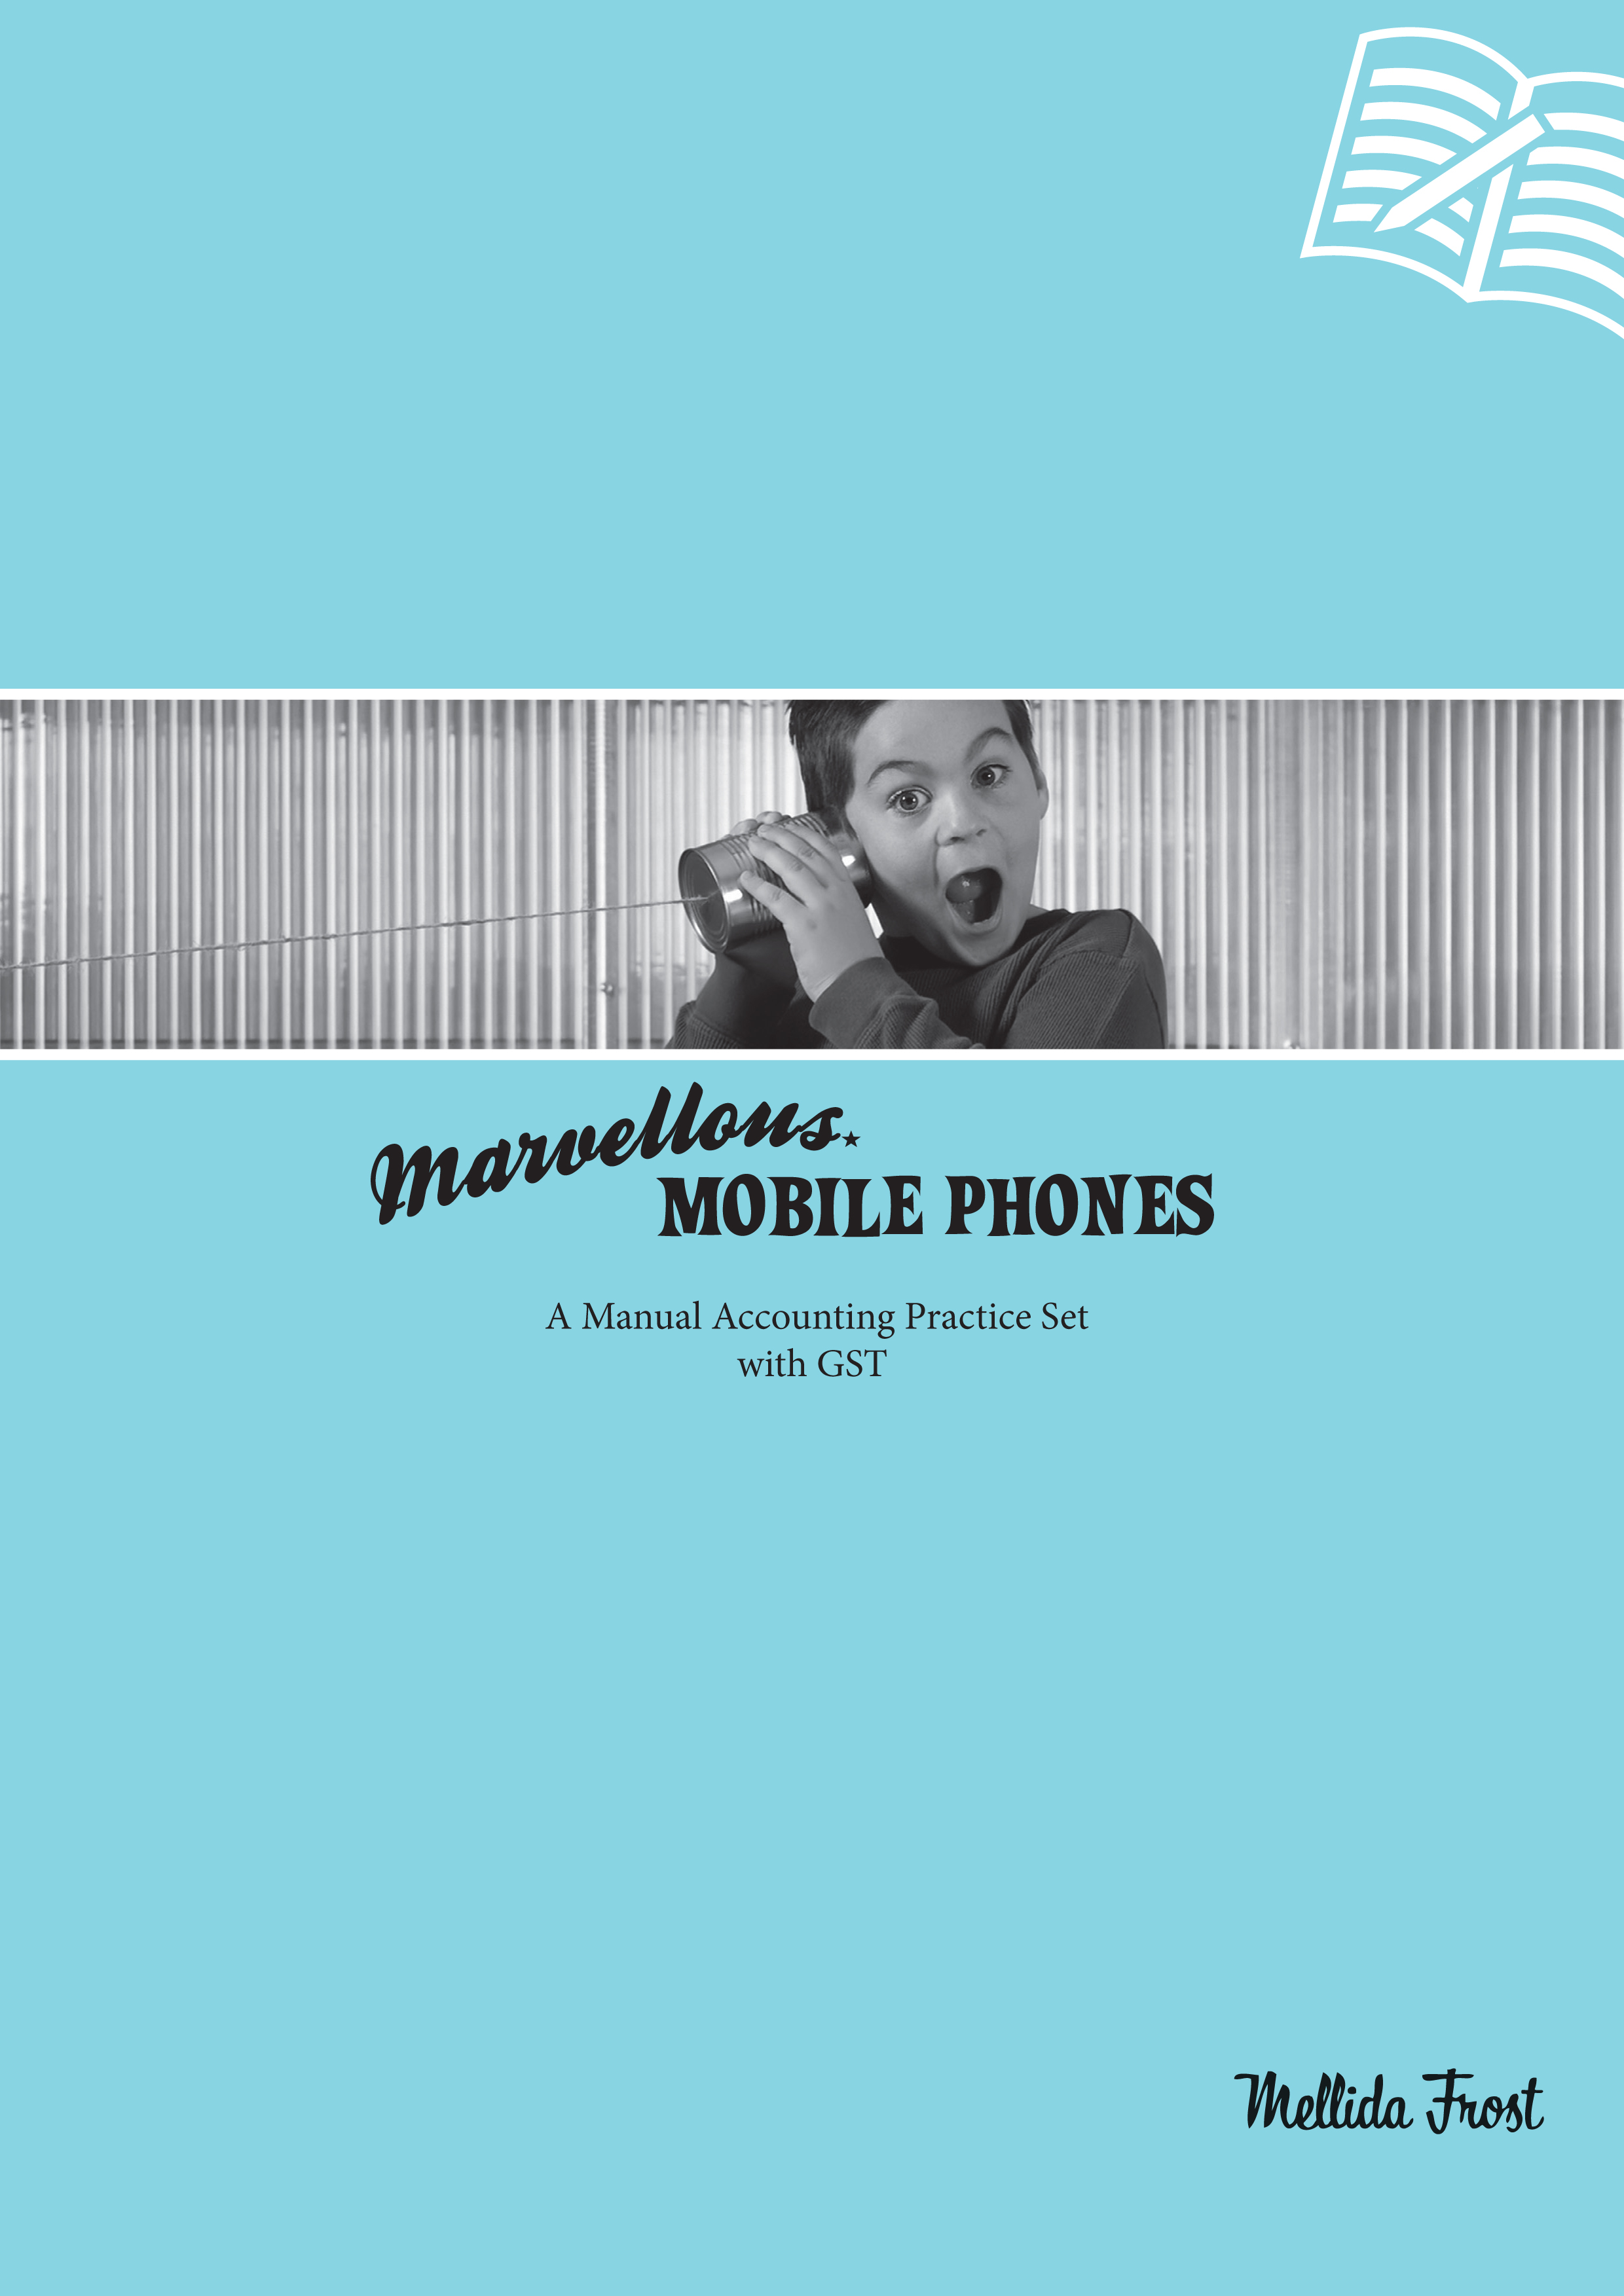 Marvellous Mobile Phones: A Manual Accounting Practice Set with GST - 9780170199230